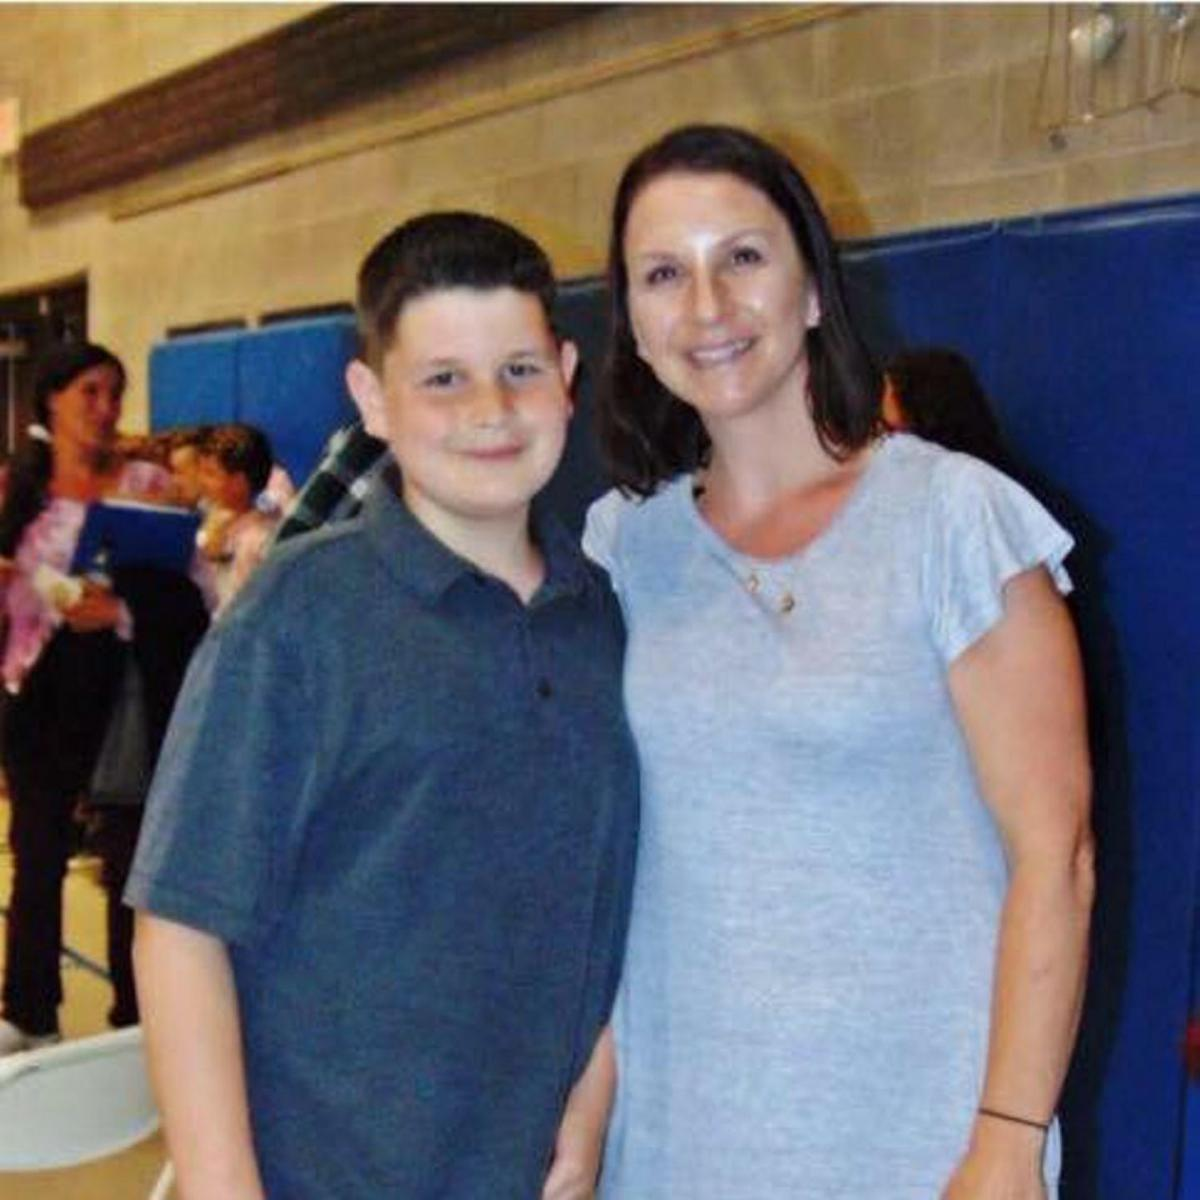 Beyond the Stigma: After son's suicide, Orford mom speaks out, pleads for kindness